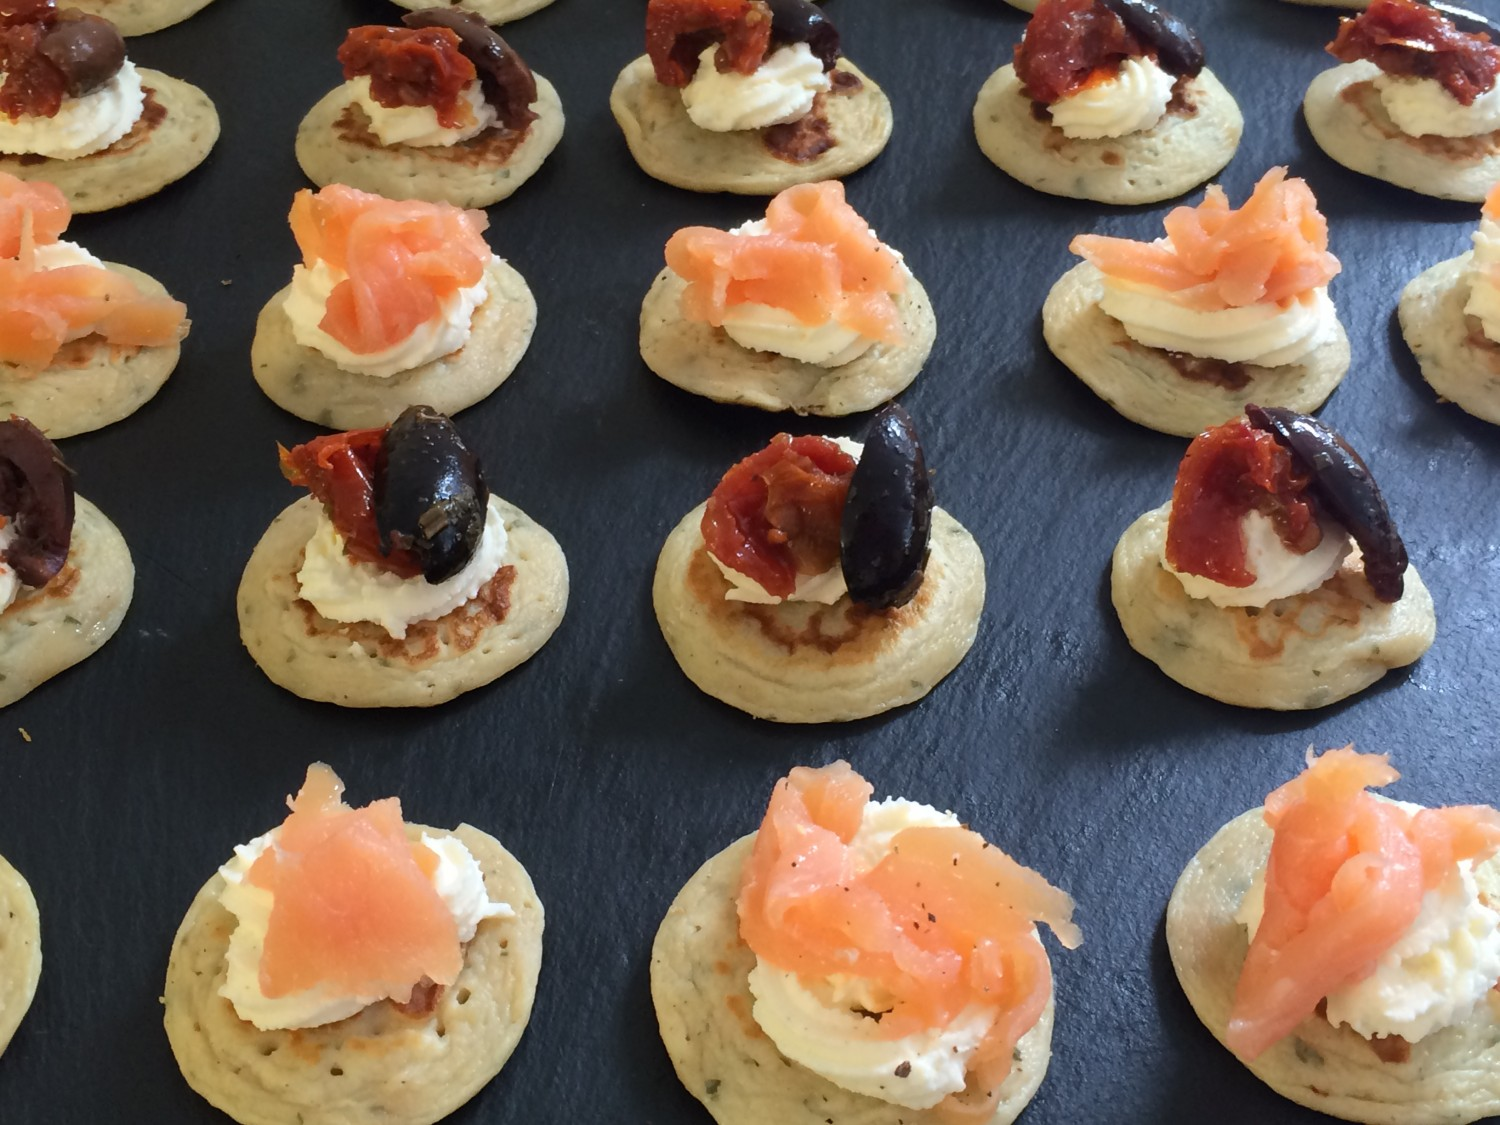 Starters and canap images catering company in sussex for Canape catering